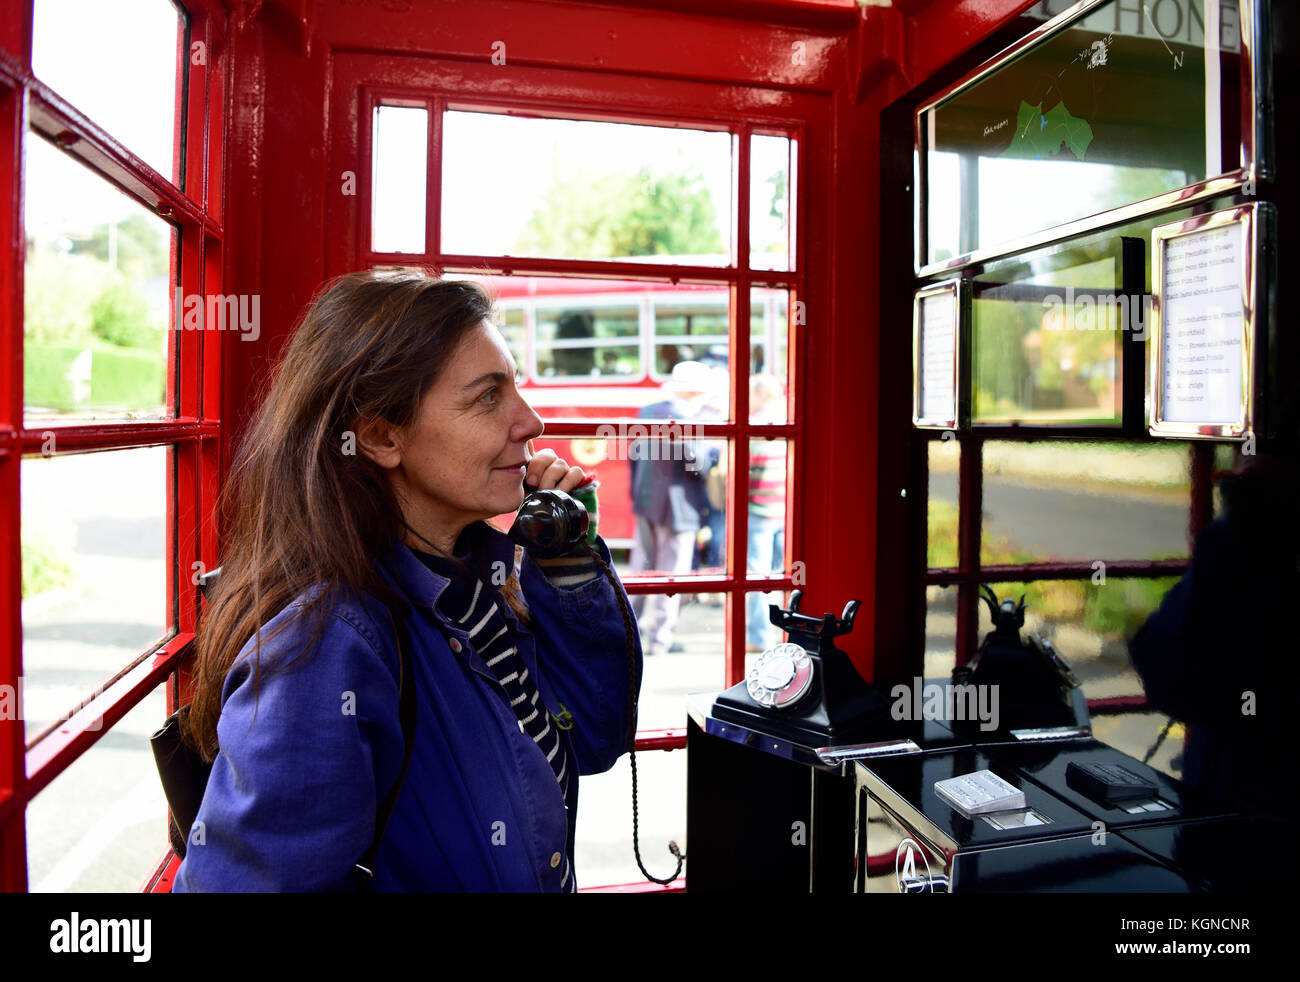 Female local resident using a traditional red phone box which has been converted into a small visitors centre. The - Stock Image